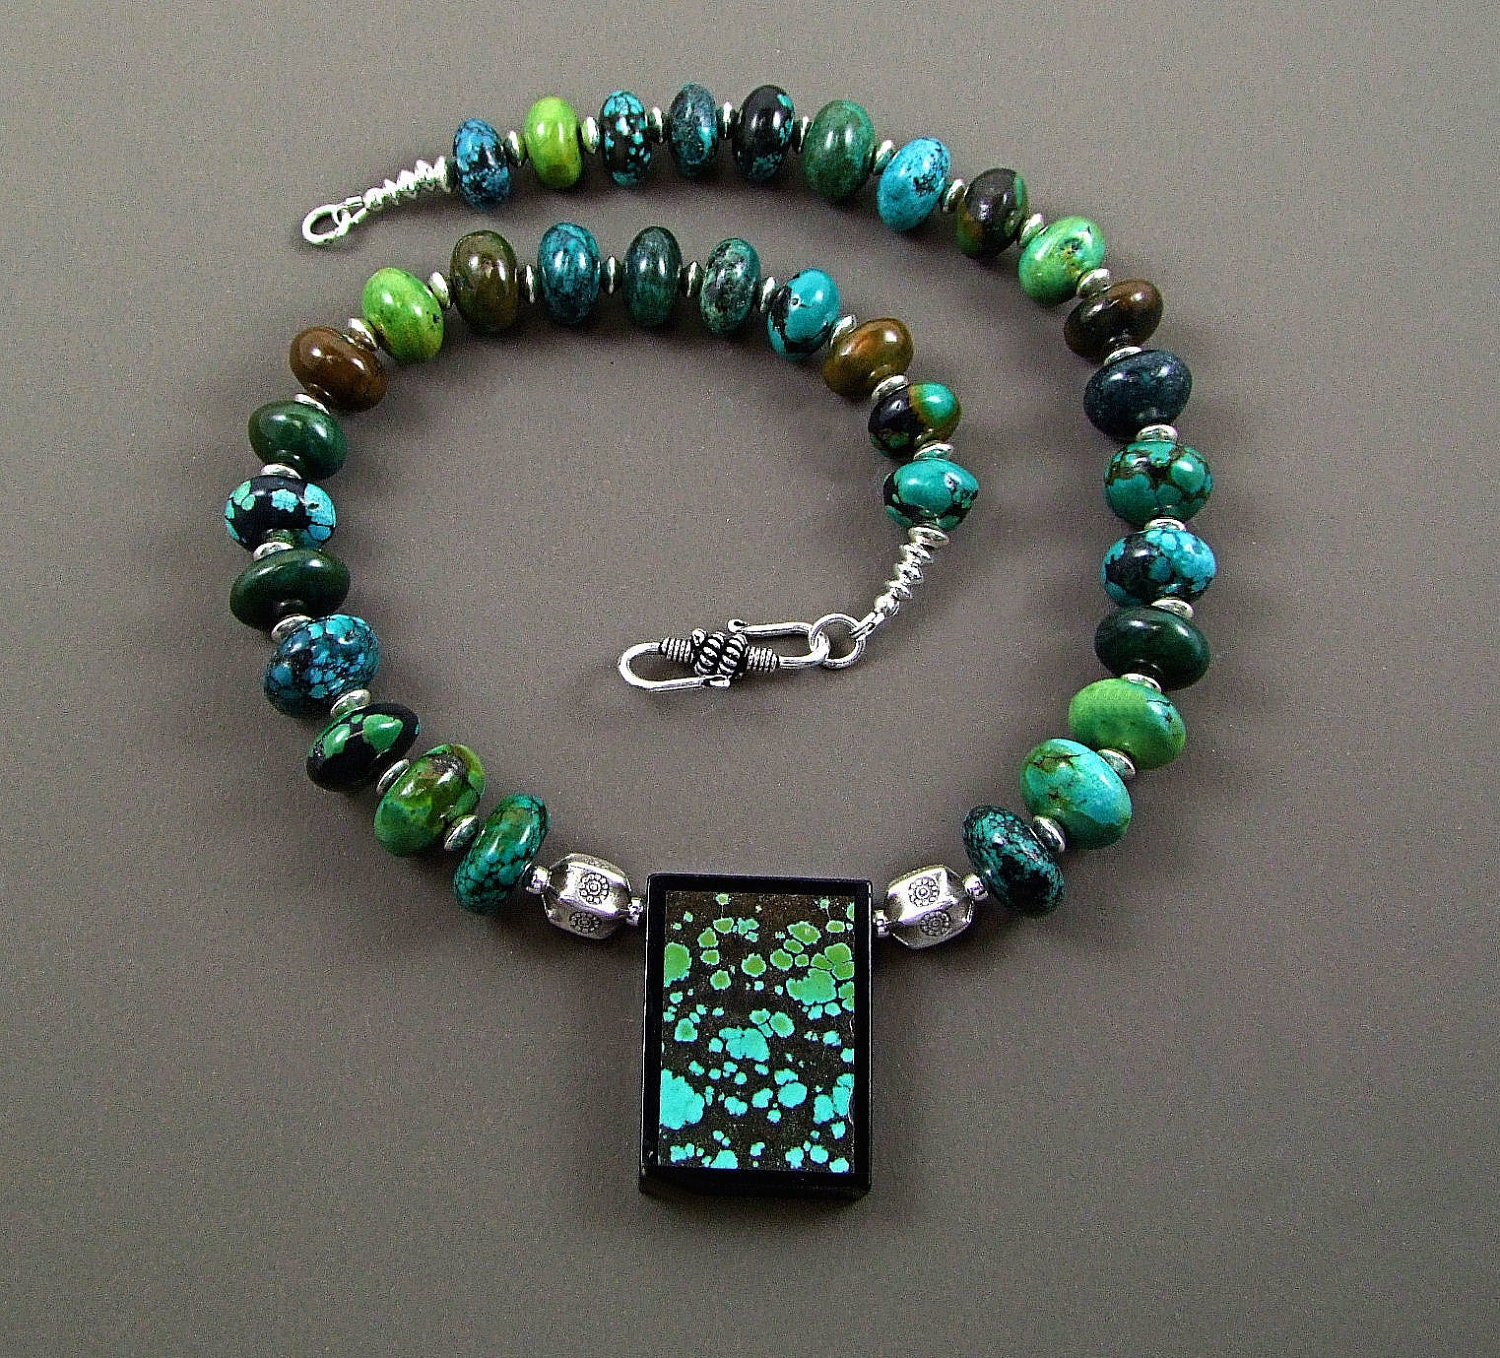 Turquoise Dragonskin Intarsia Necklace Stunning by TheSilverBear